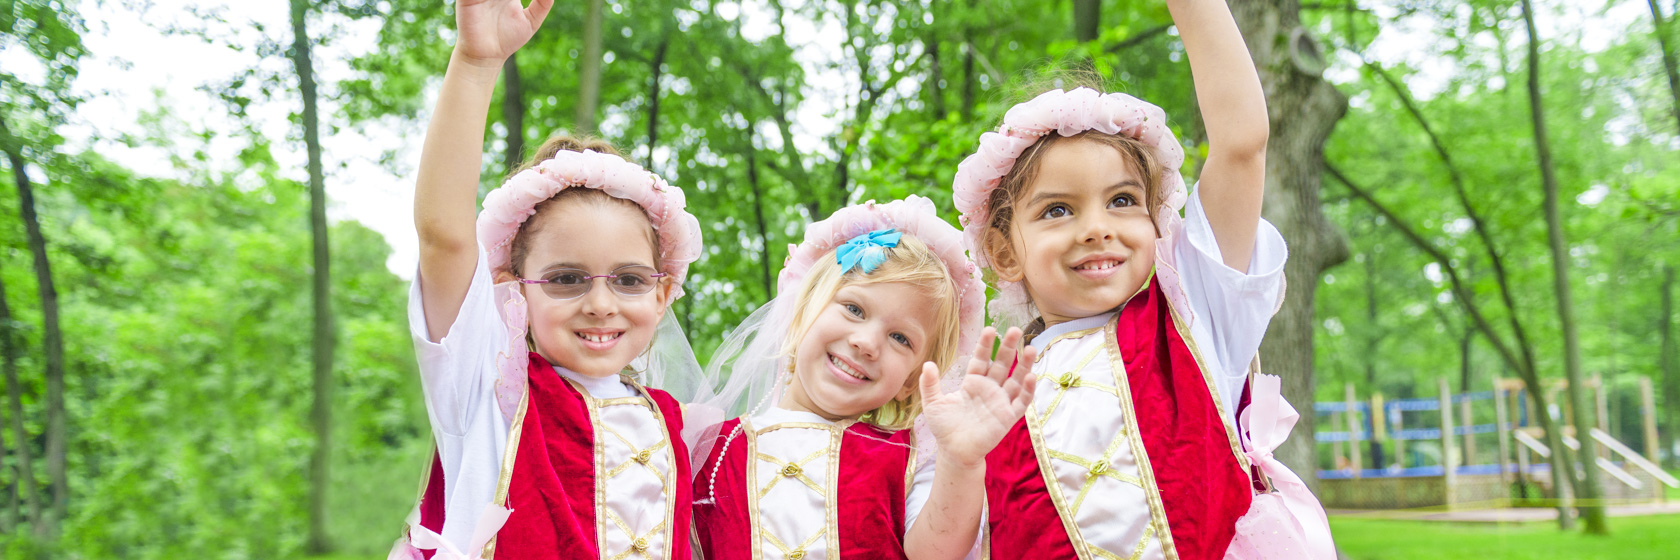 Three young girl campers all dressed up in the same princess dress smiling together